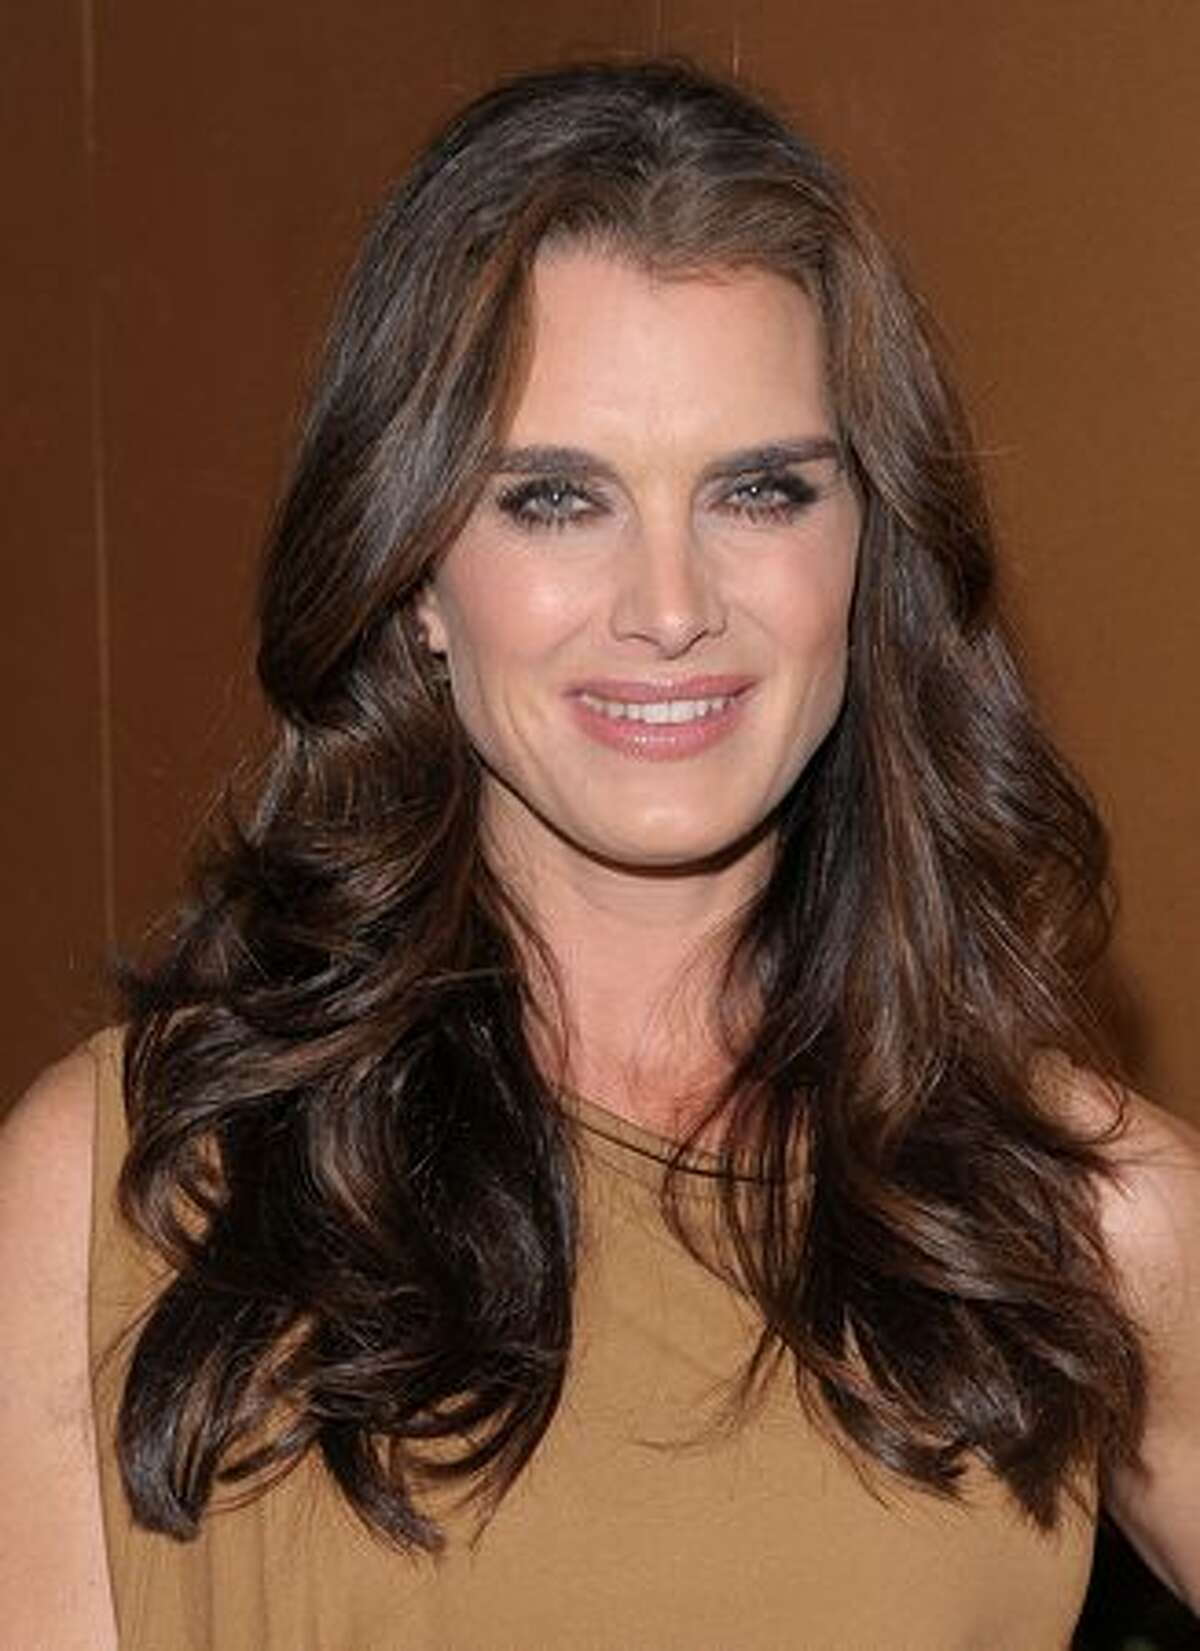 Actress Brooke Shields attends the MoMA's Second Annual Film Benefit, Honoring Tim Burton at the MOMA in New York.